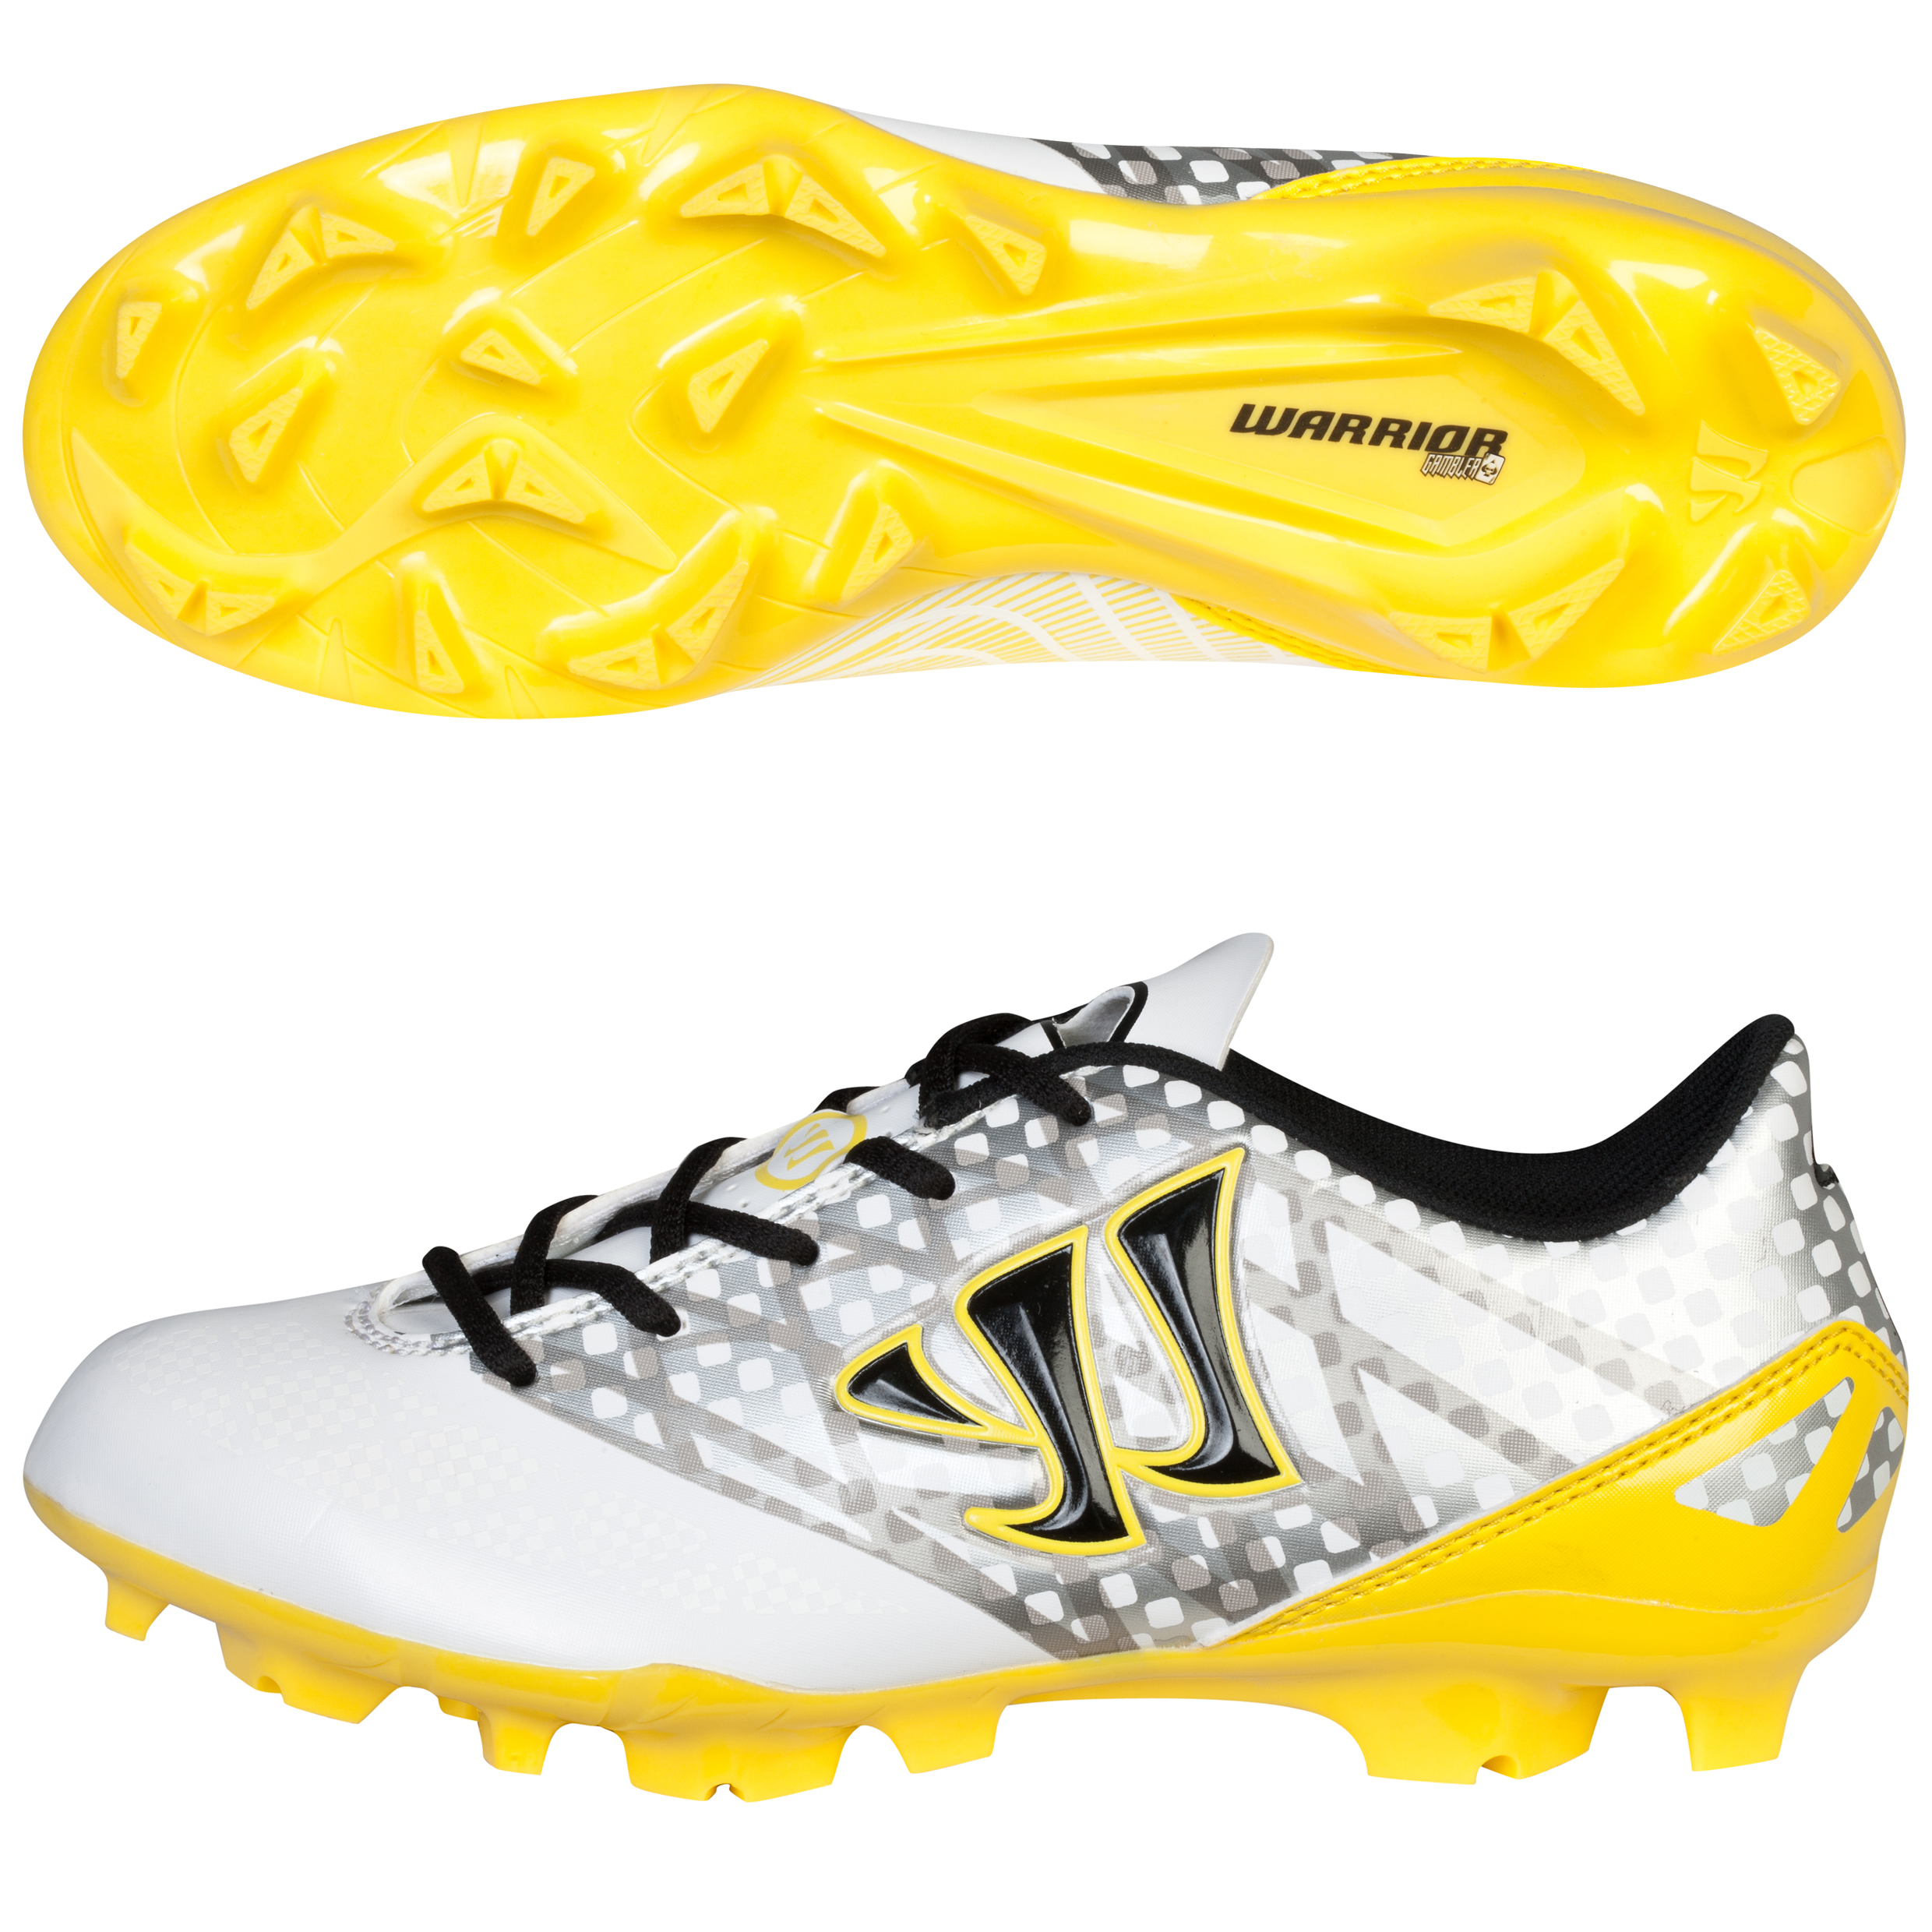 Warrior Gambler Combat Firm Ground Football Boots - Kids White